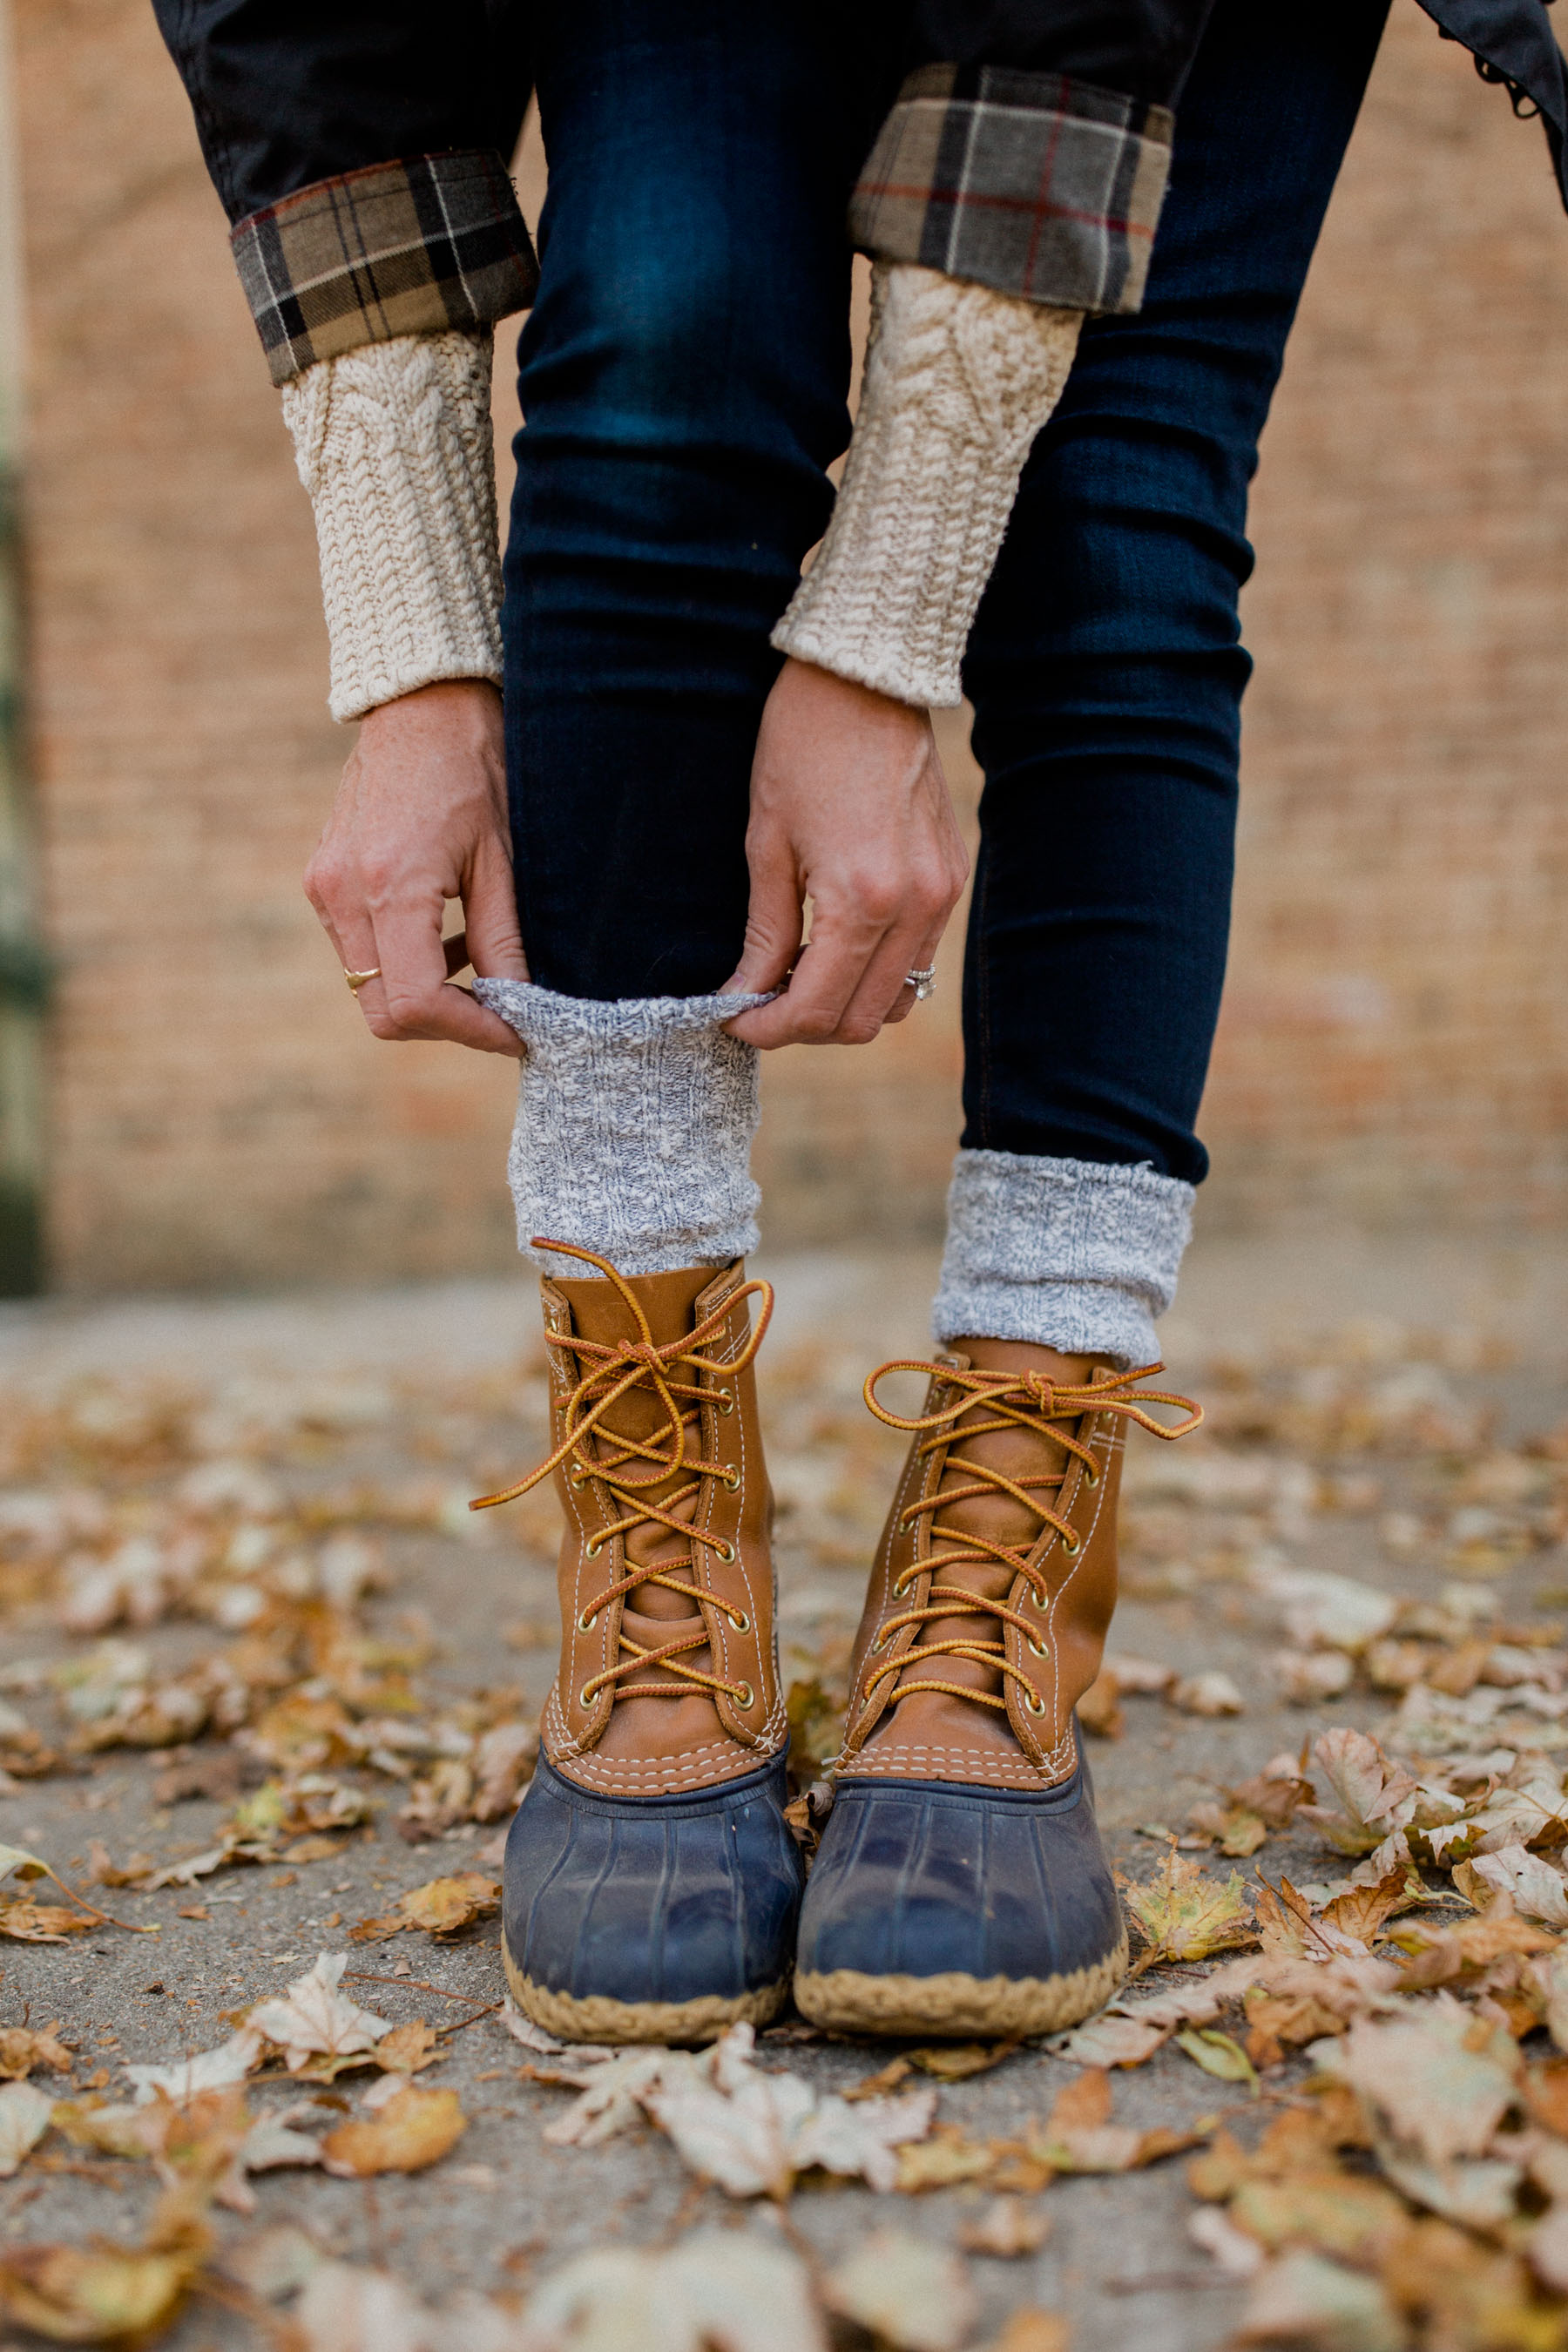 Order Your Bean Boots - Kelly in the City